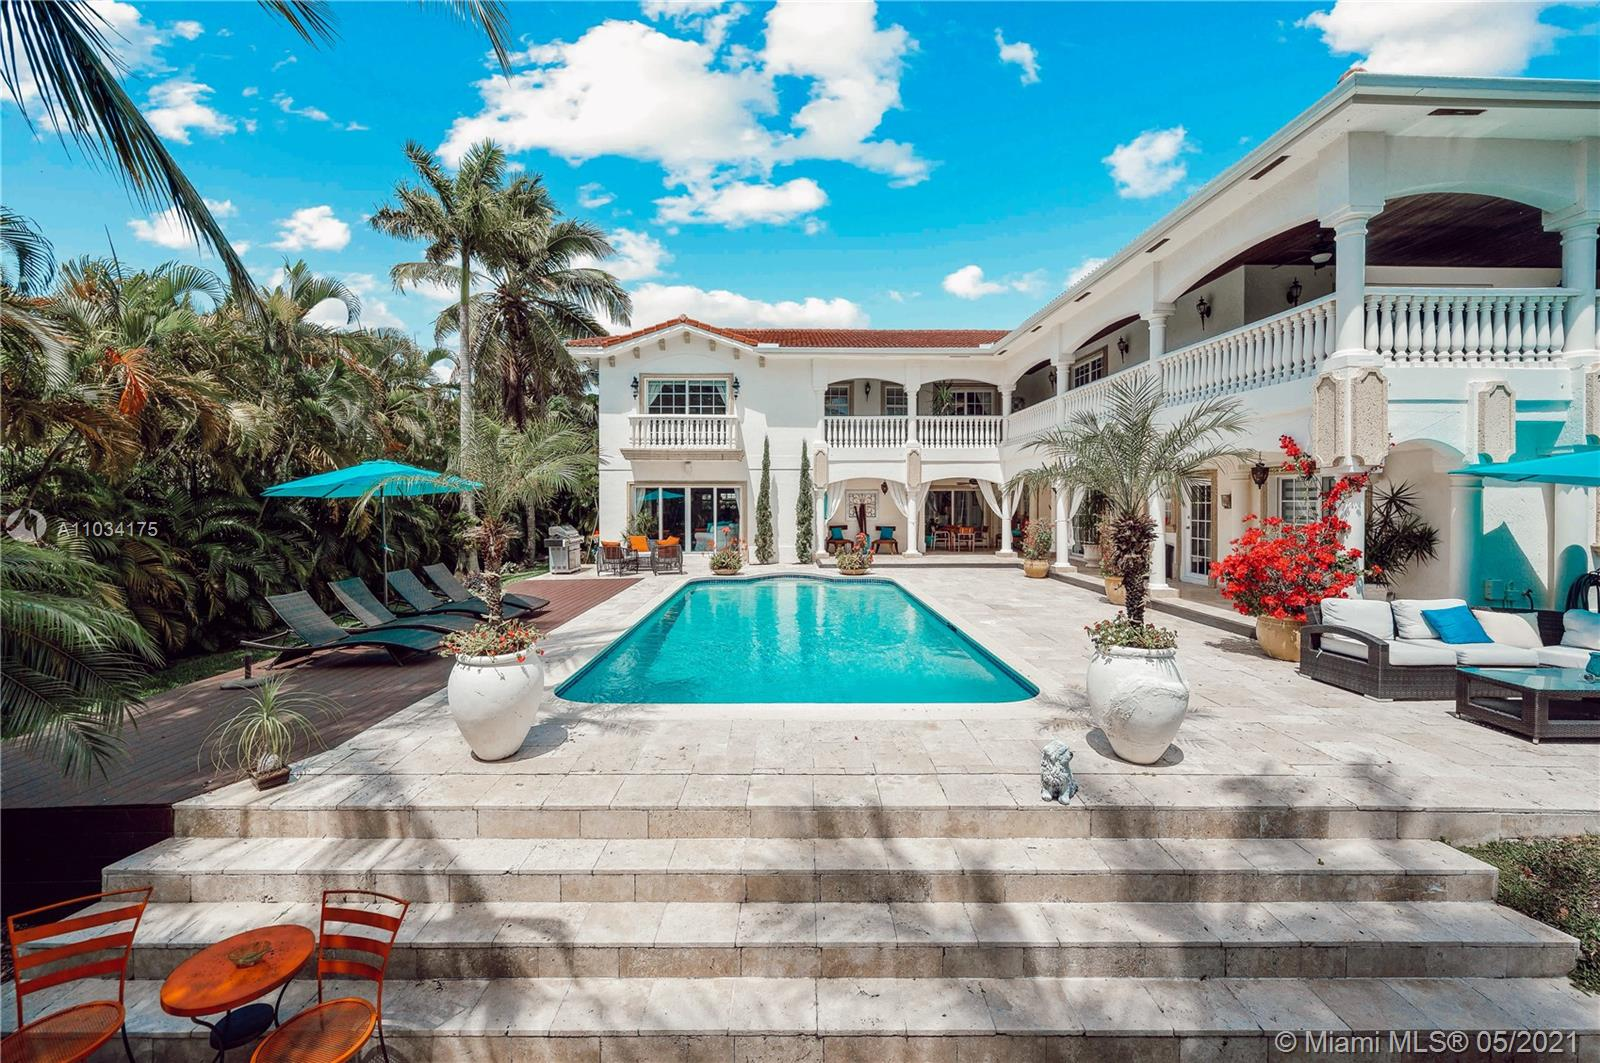 Gorgeous mediterranean style mansion in Golden Isles. Two story waterfront residence with 100 ft. of deep-water frontage. A boaters dream with a wide canal, no fixed bridges, boat & jet ski lifts. Over 6000 sq. ft. of living space, 6 bedrooms, 5/2 bath, 15750 sq. ft. corner lot, outdoor surveillant cameras, 3 new a/c units, palatial private luxurious setting ideal for entertaining, lush, and extensive landscaping, heated pool, fenced and treed, gated community, no association, walking distance to shops, and new amenities filled galore park which is steps away. You will be proud to call this your home. Great as a home or as an Airbnb investment. Furniture and boat are negotiable. MOTIVATED SELLER!